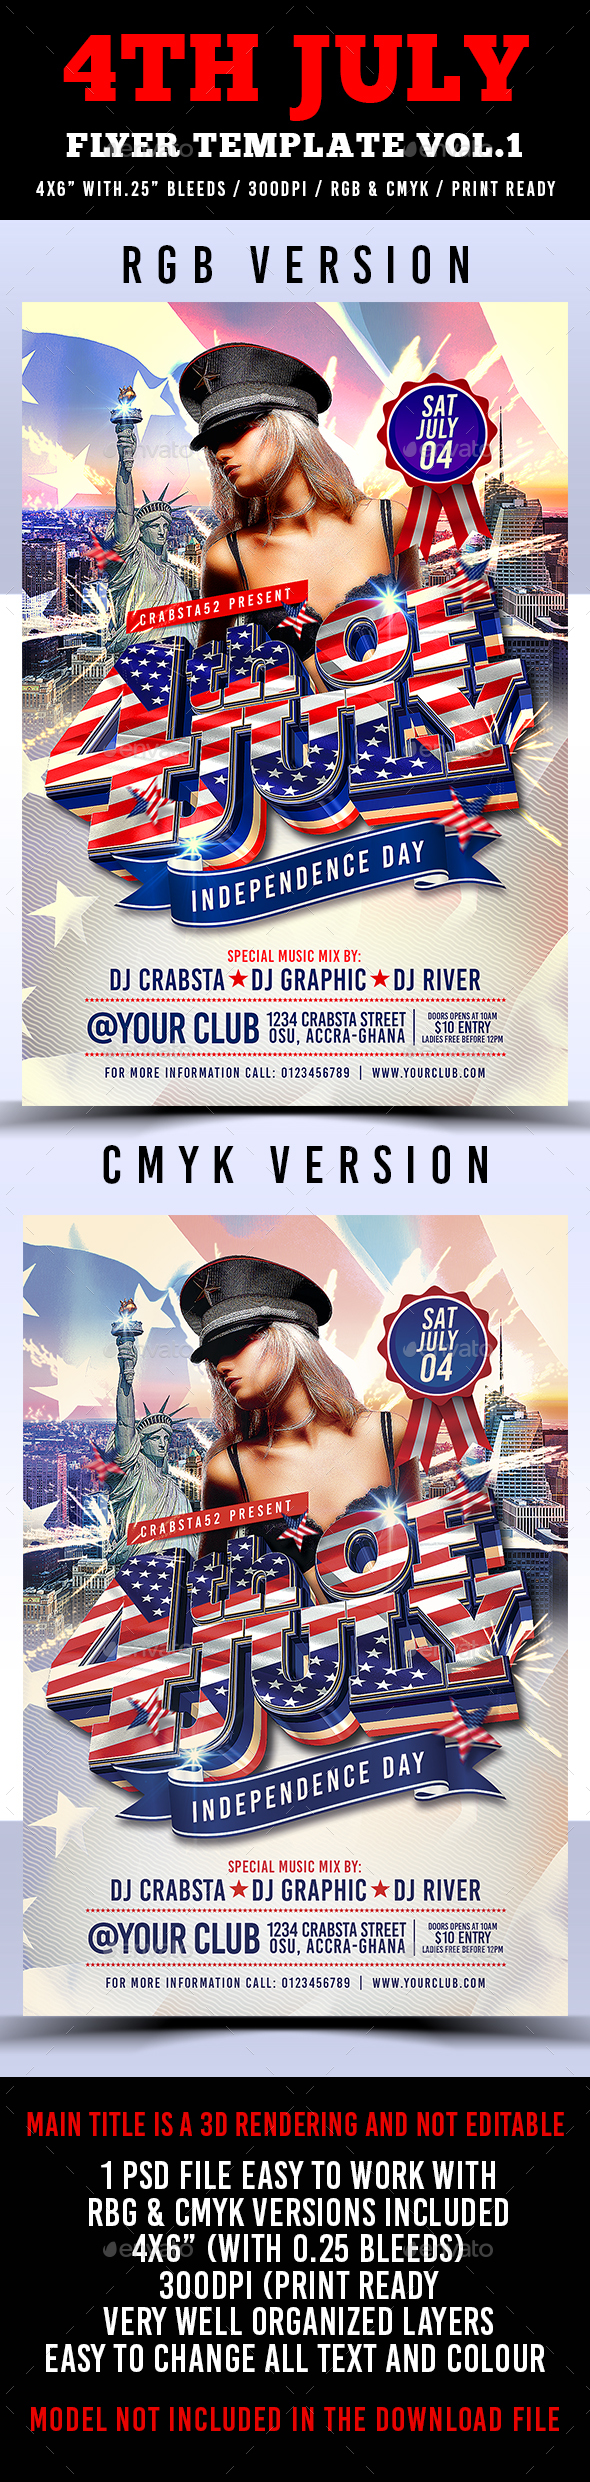 4th of july menu template - 4th july flyer template vol 1 by crabsta52 graphicriver